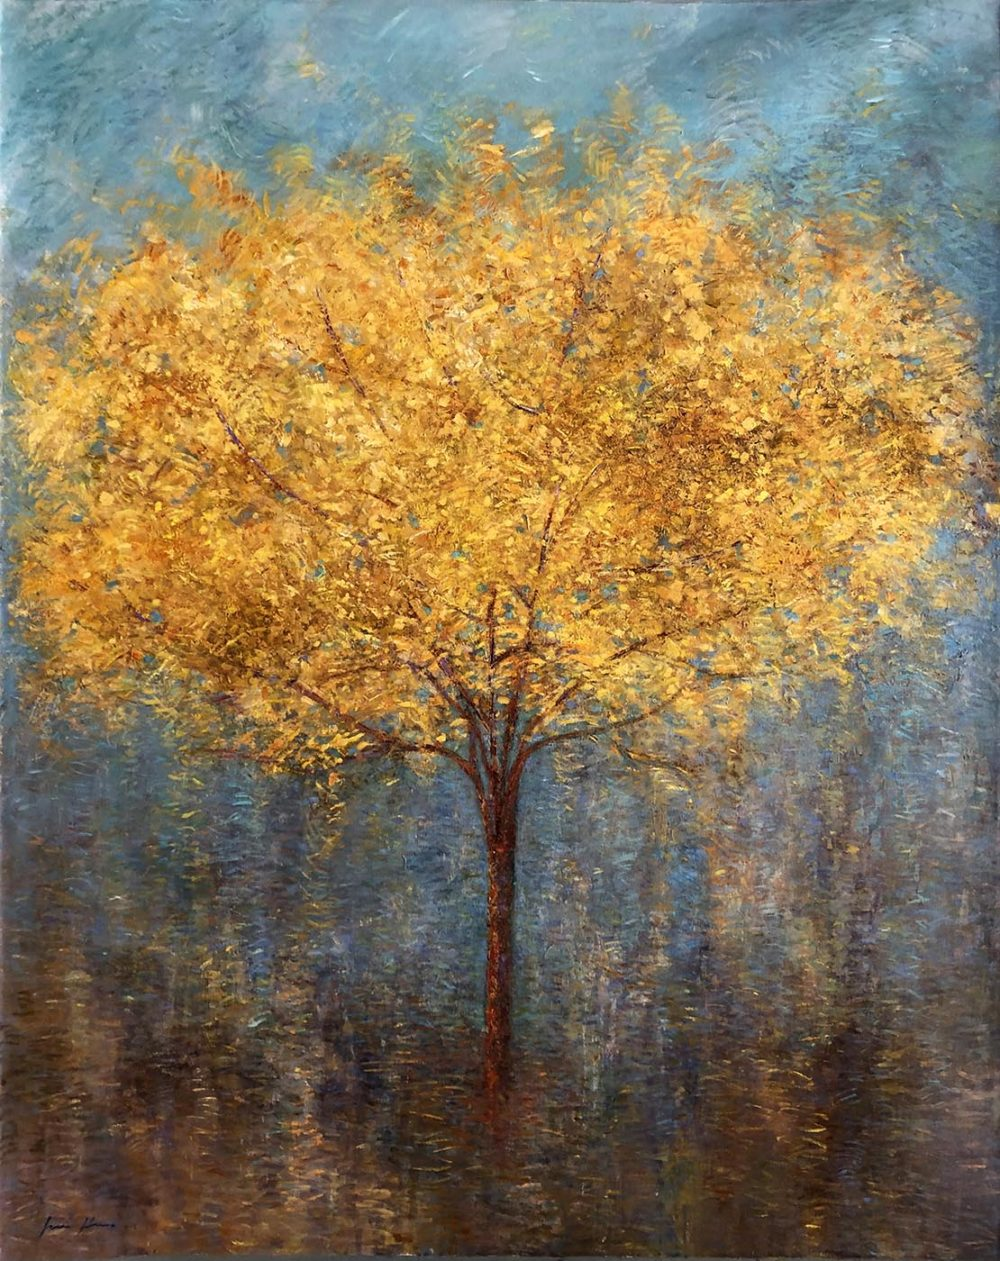 Sunshower Tree #4 - Fiona Hoop